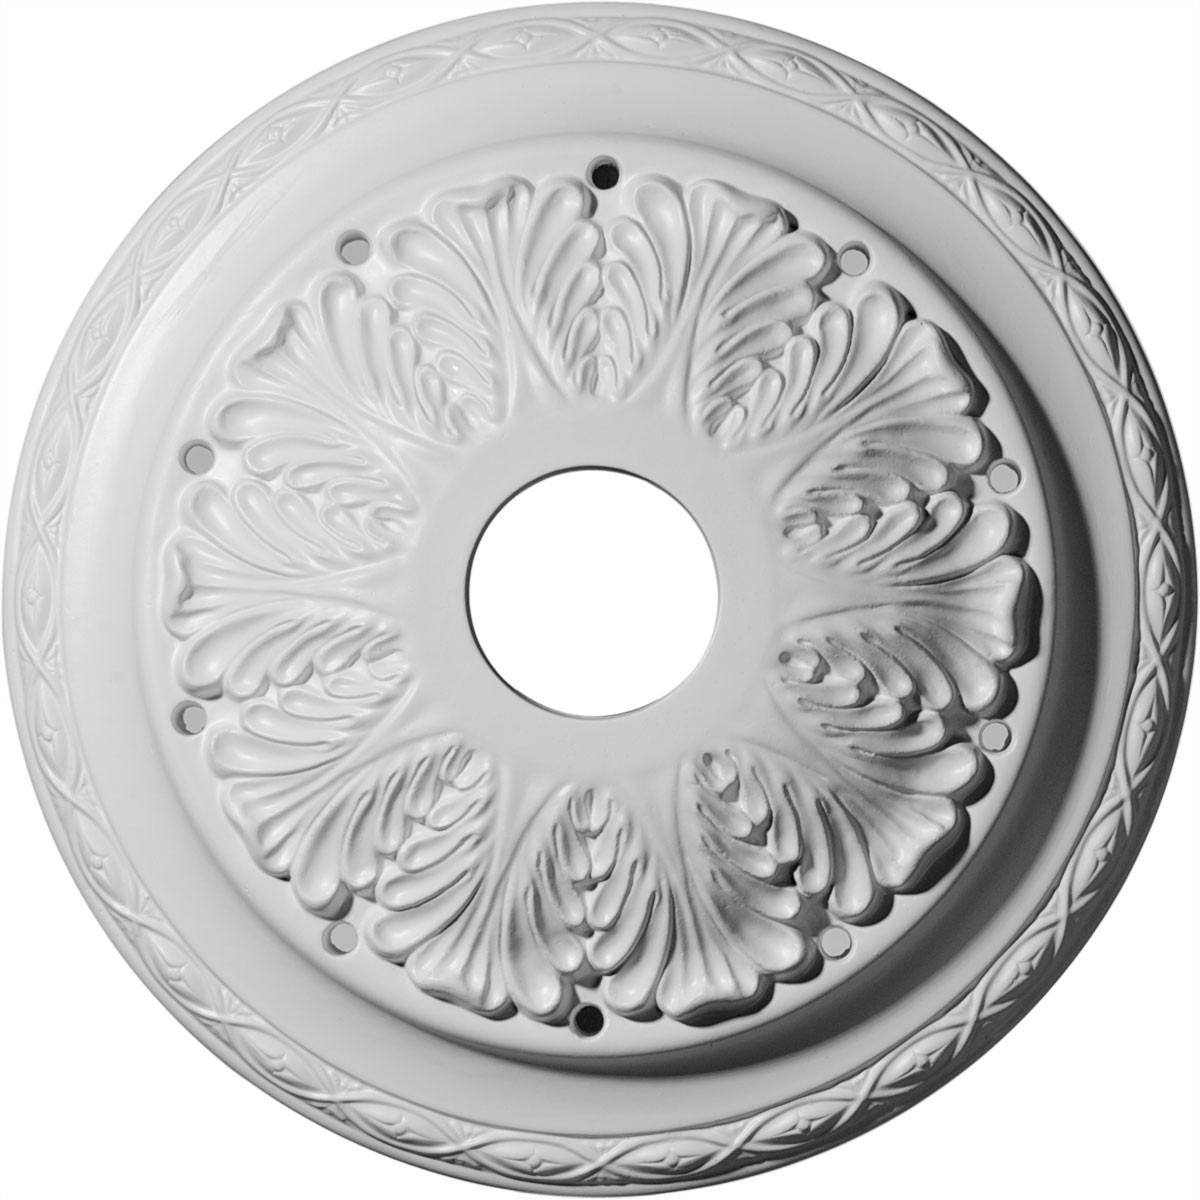 "EM-CM13AS - 13 3/4""OD x 2 3/4""ID x 3""P Asa Ceiling Medallion (Fits Canopies up to 4 1/2"")"